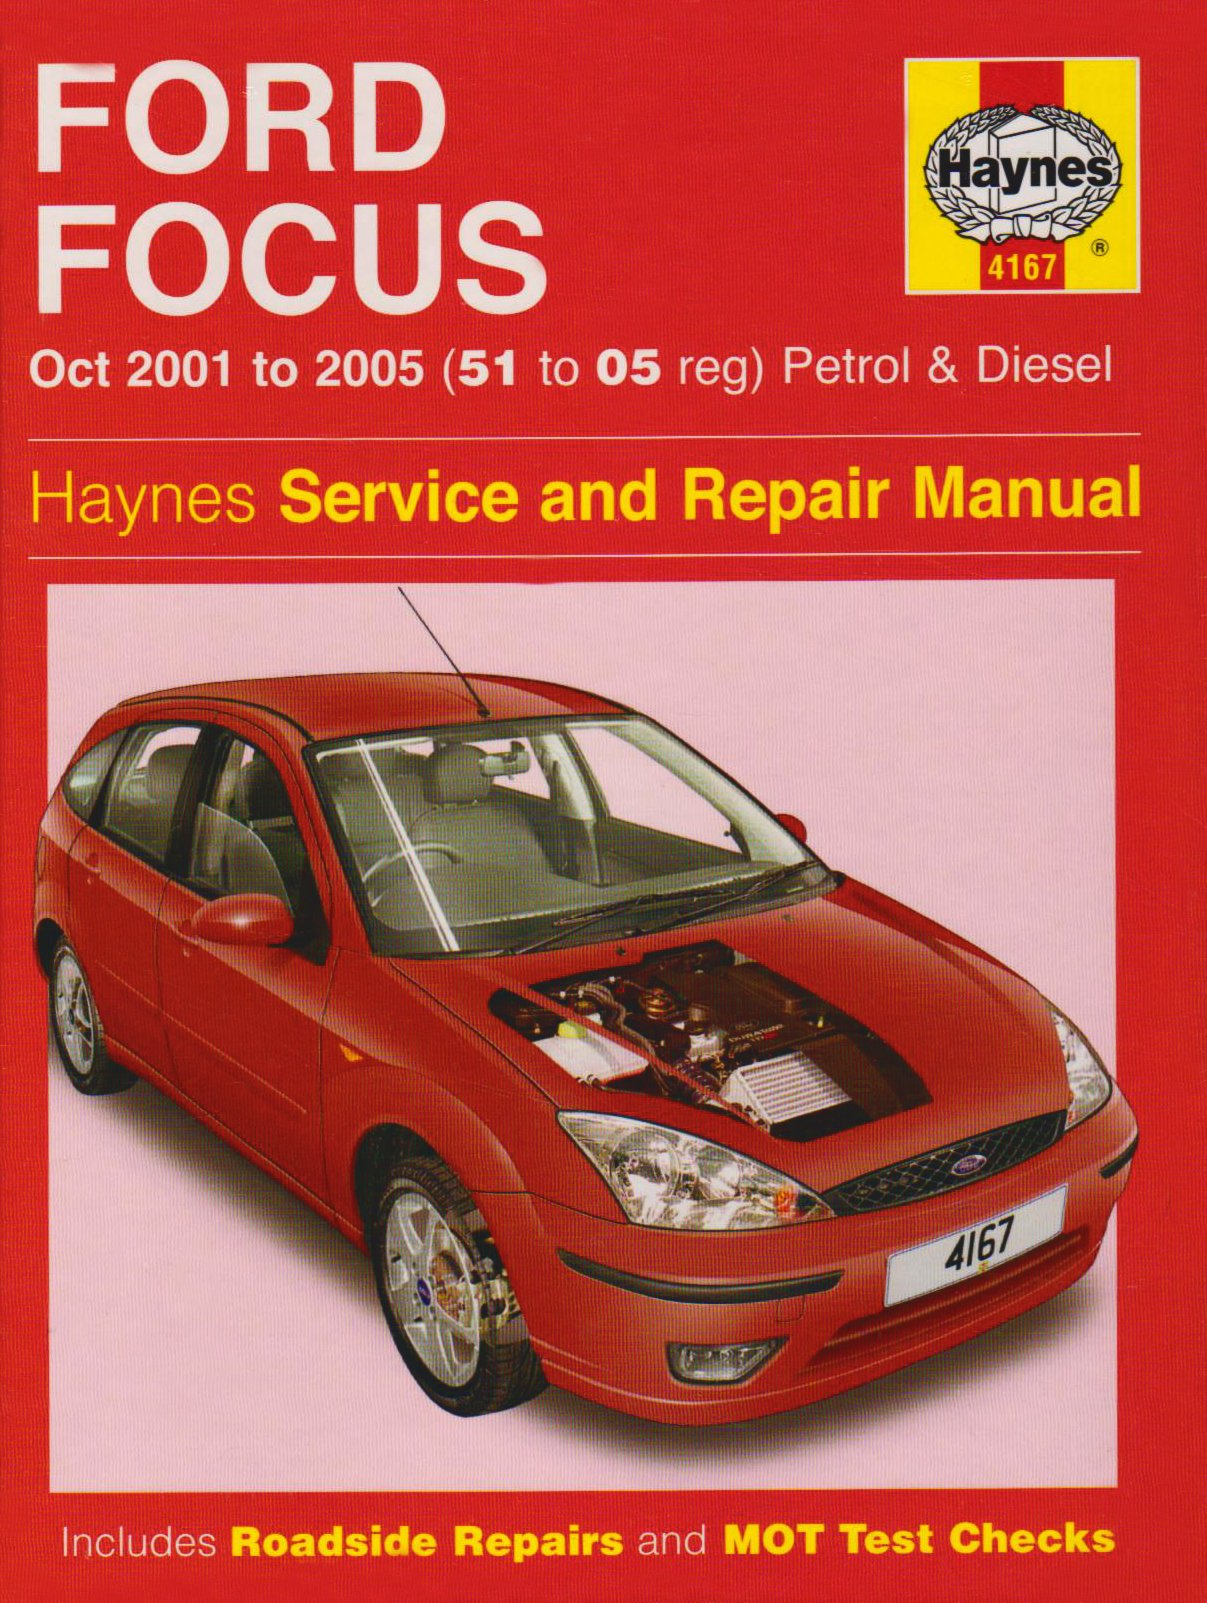 Ford Focus Petrol and Diesel Service and Repair Manual: 2001 to 2005  (Service & repair manuals): Amazon.co.uk: Martynn Randall: 9781844257416:  Books